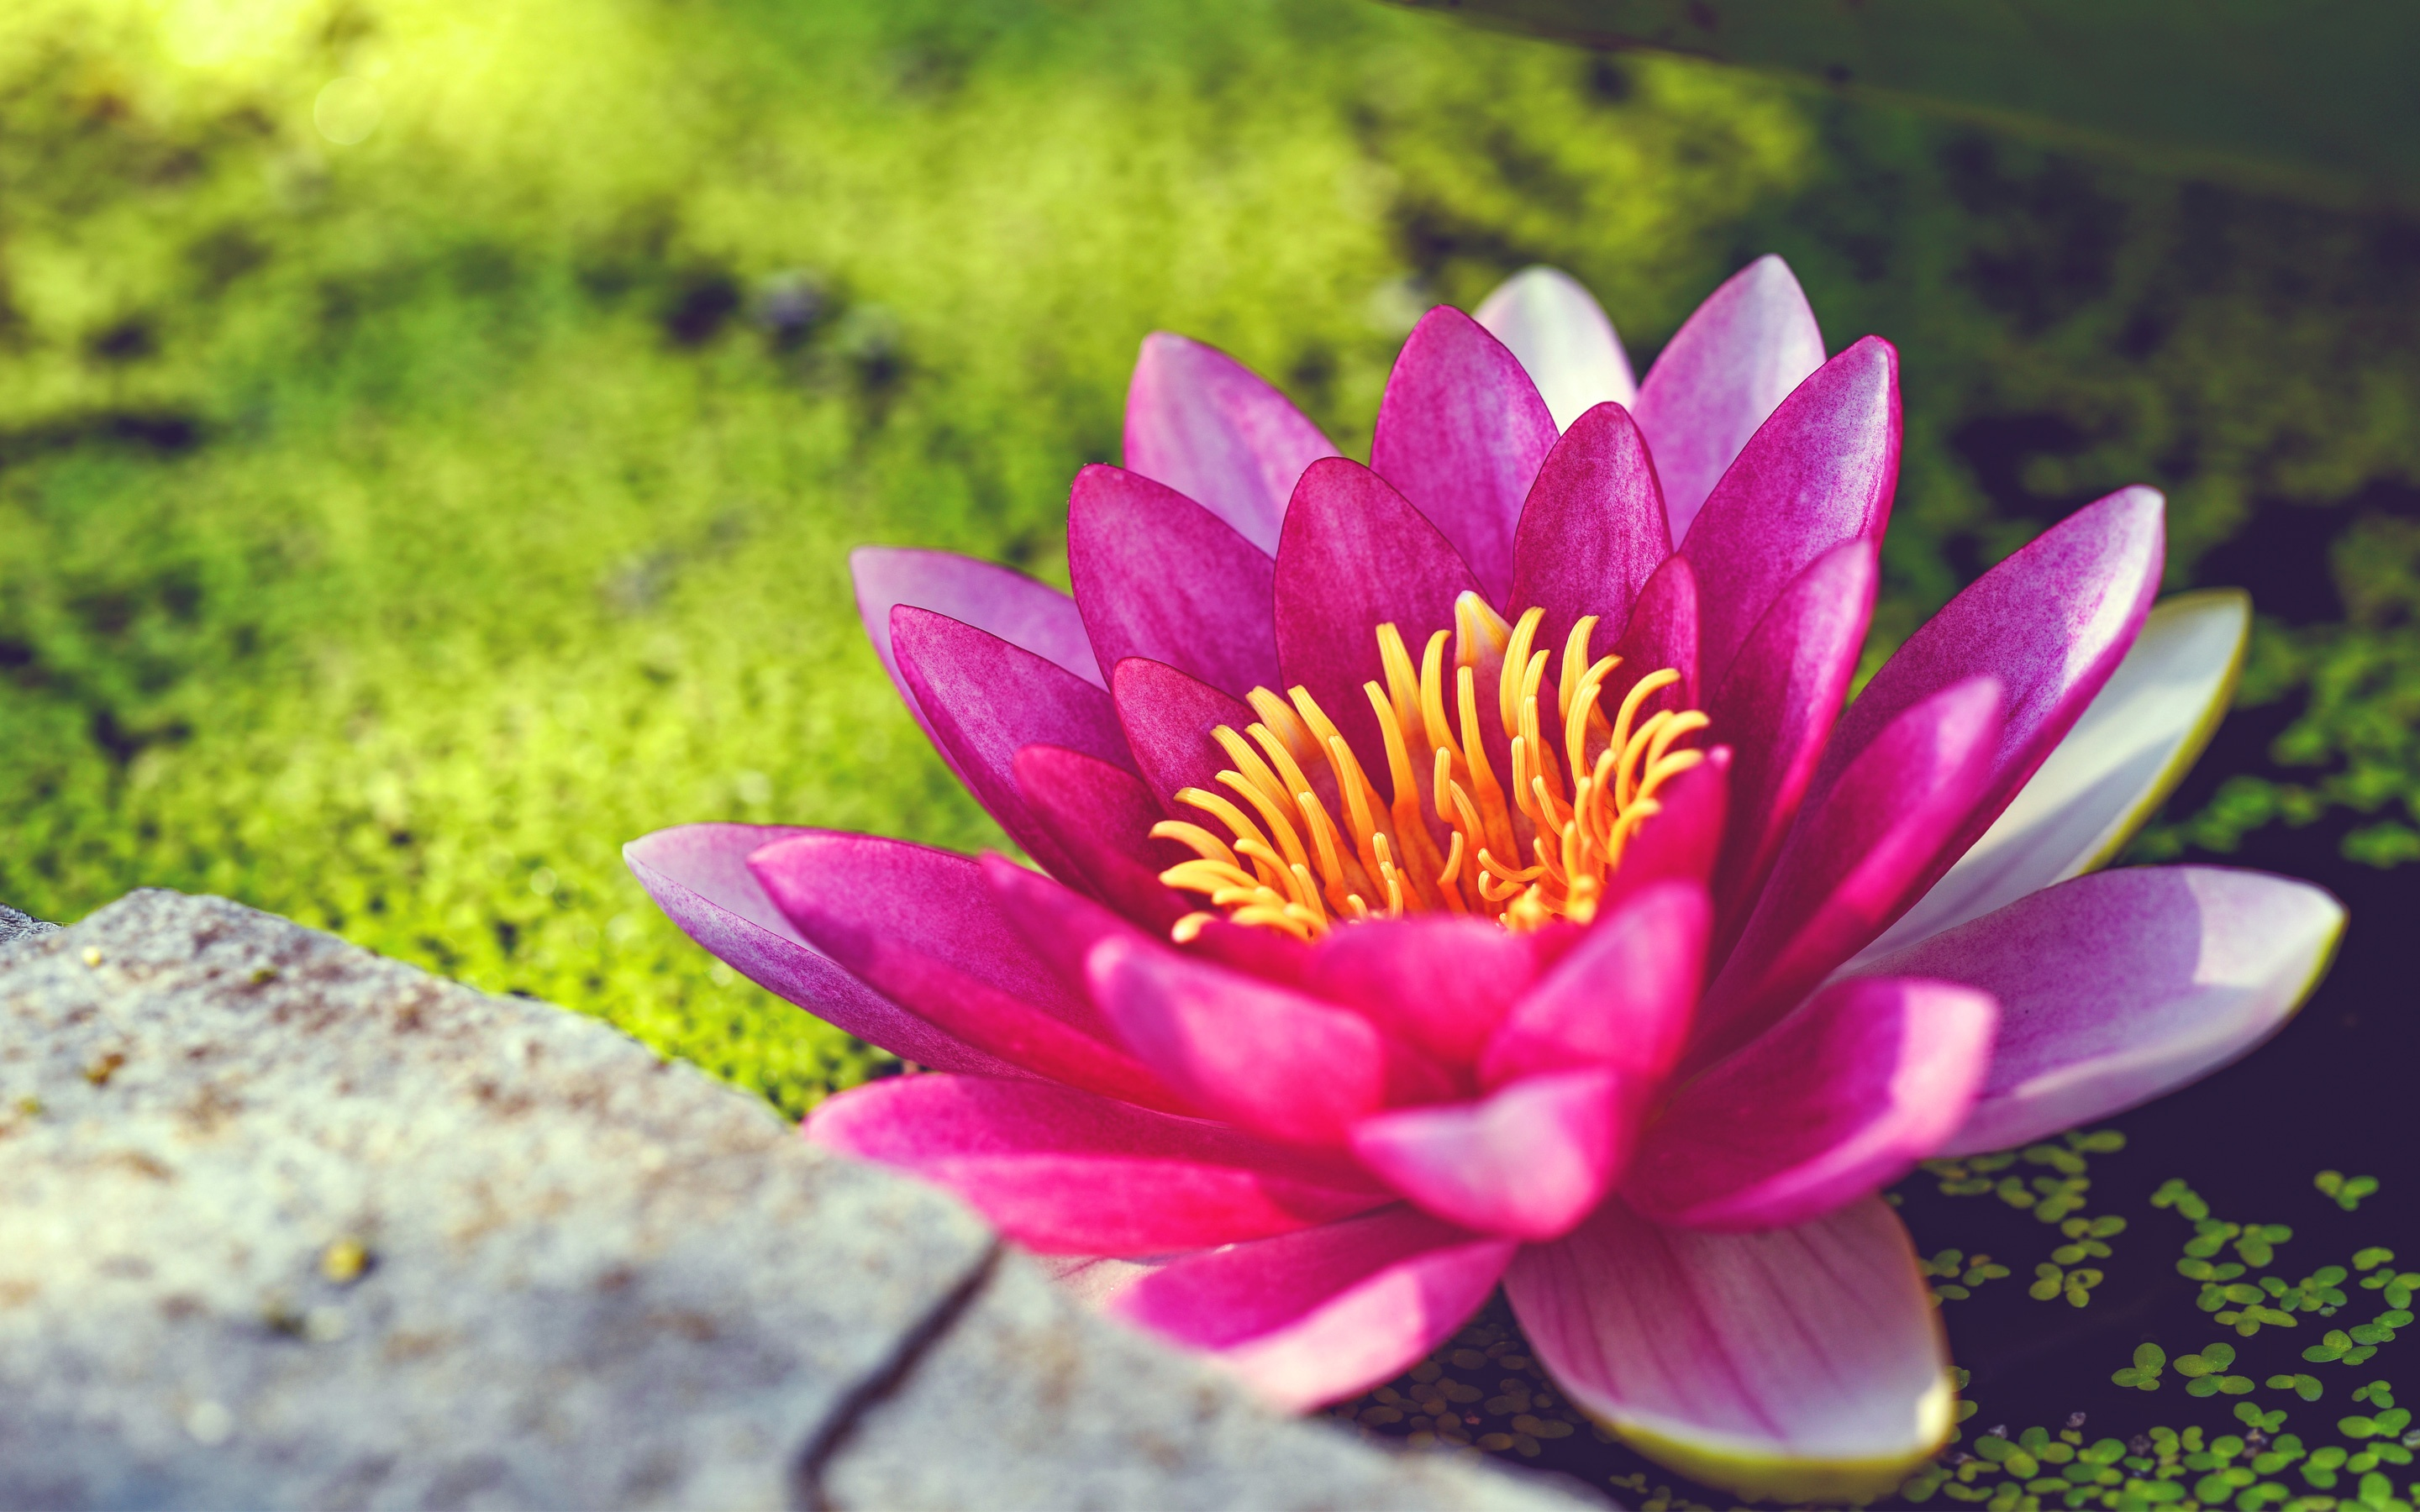 Pink water lily flower wallpapers in jpg format for free download 25601600 28801800 320480 izmirmasajfo